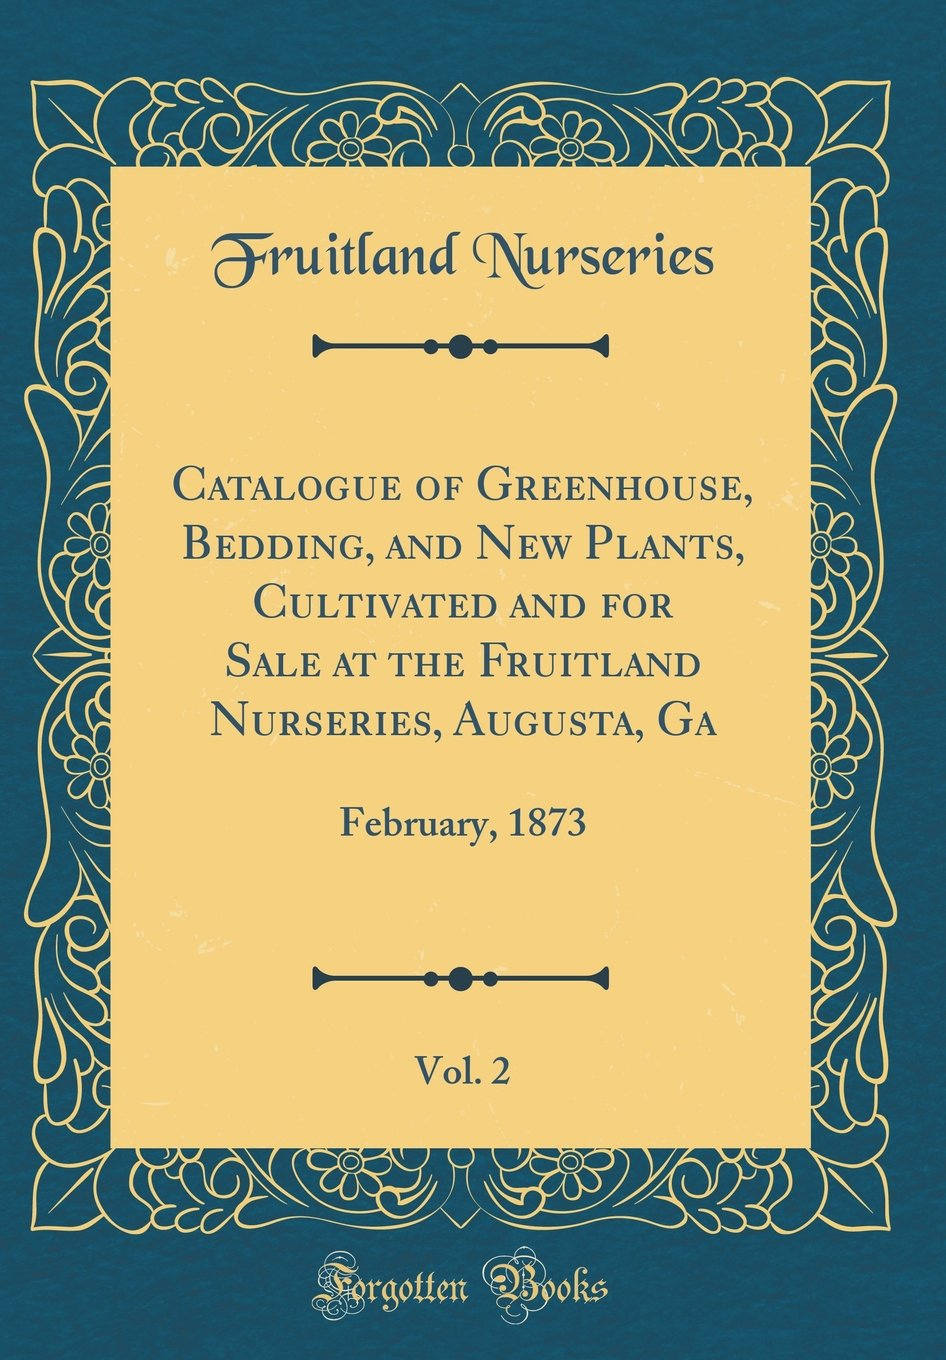 Download Catalogue of Greenhouse, Bedding, and New Plants, Cultivated and for Sale at the Fruitland Nurseries, Augusta, Ga, Vol. 2: February, 1873 (Classic Reprint) PDF